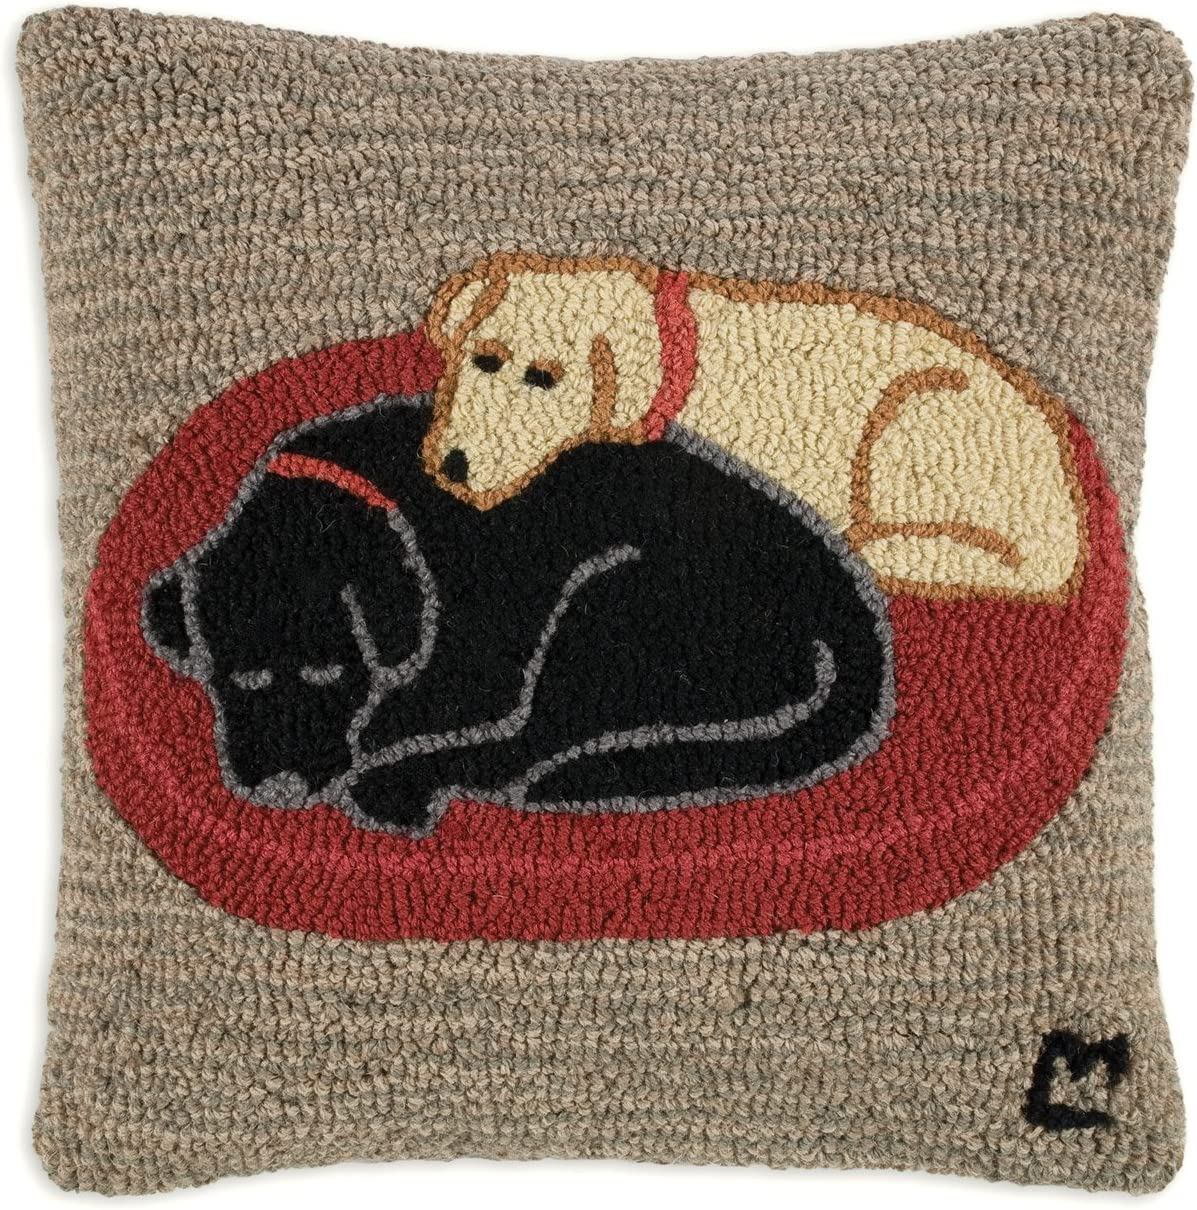 Chandler 4 Corners Artist-Designed Two Sleeping Labs Hand-Hooked Wool Decorative Throw Pillow 18 x 18